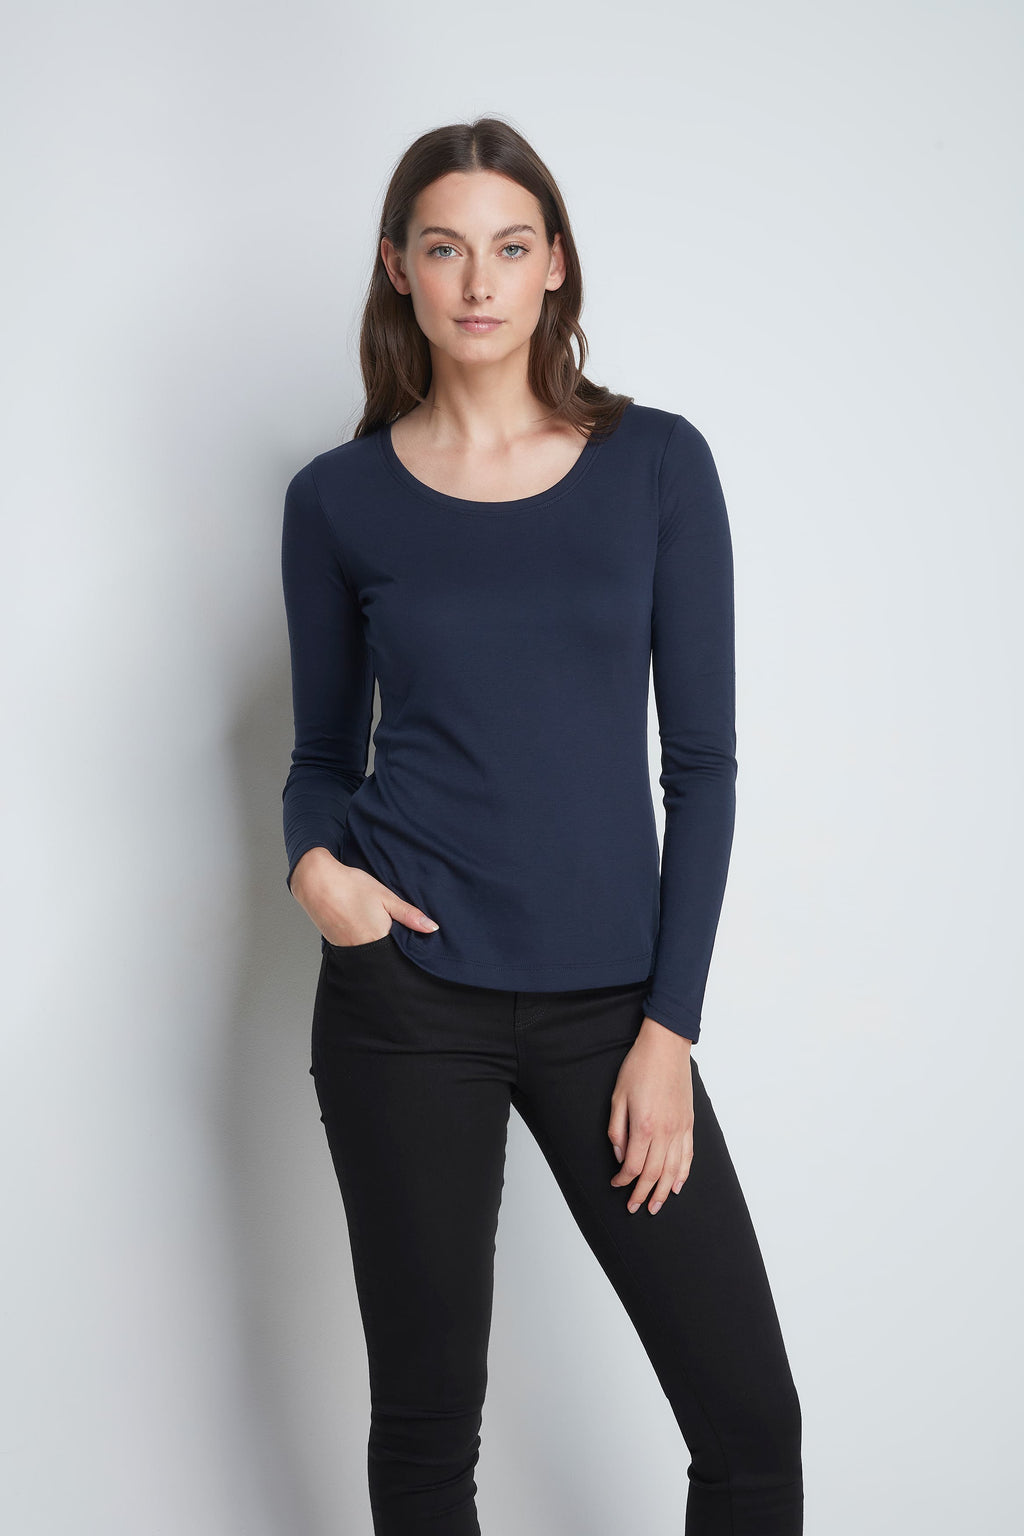 Long Sleeve Scoop Neck T-shirt Long Sleeve T-shirt Lavender Hill Clothing